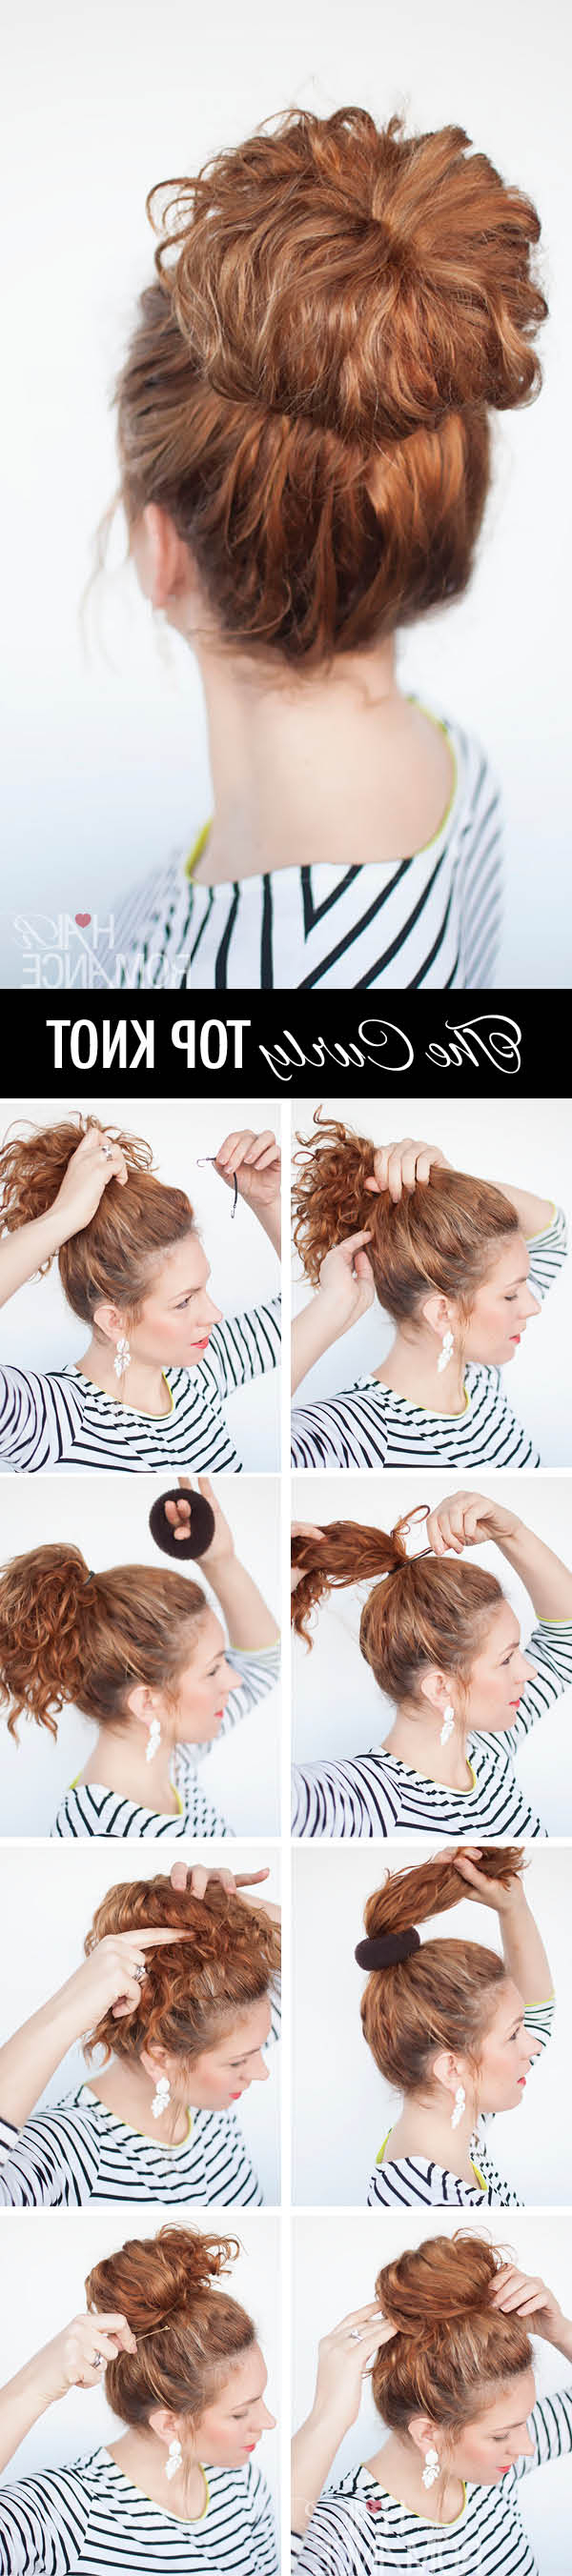 Curls Week – Curly Top Knot Hairstyle Tutorial – Hair Romance Inside Famous Messy Updo Hairstyles With Free Curly Ends (View 9 of 20)